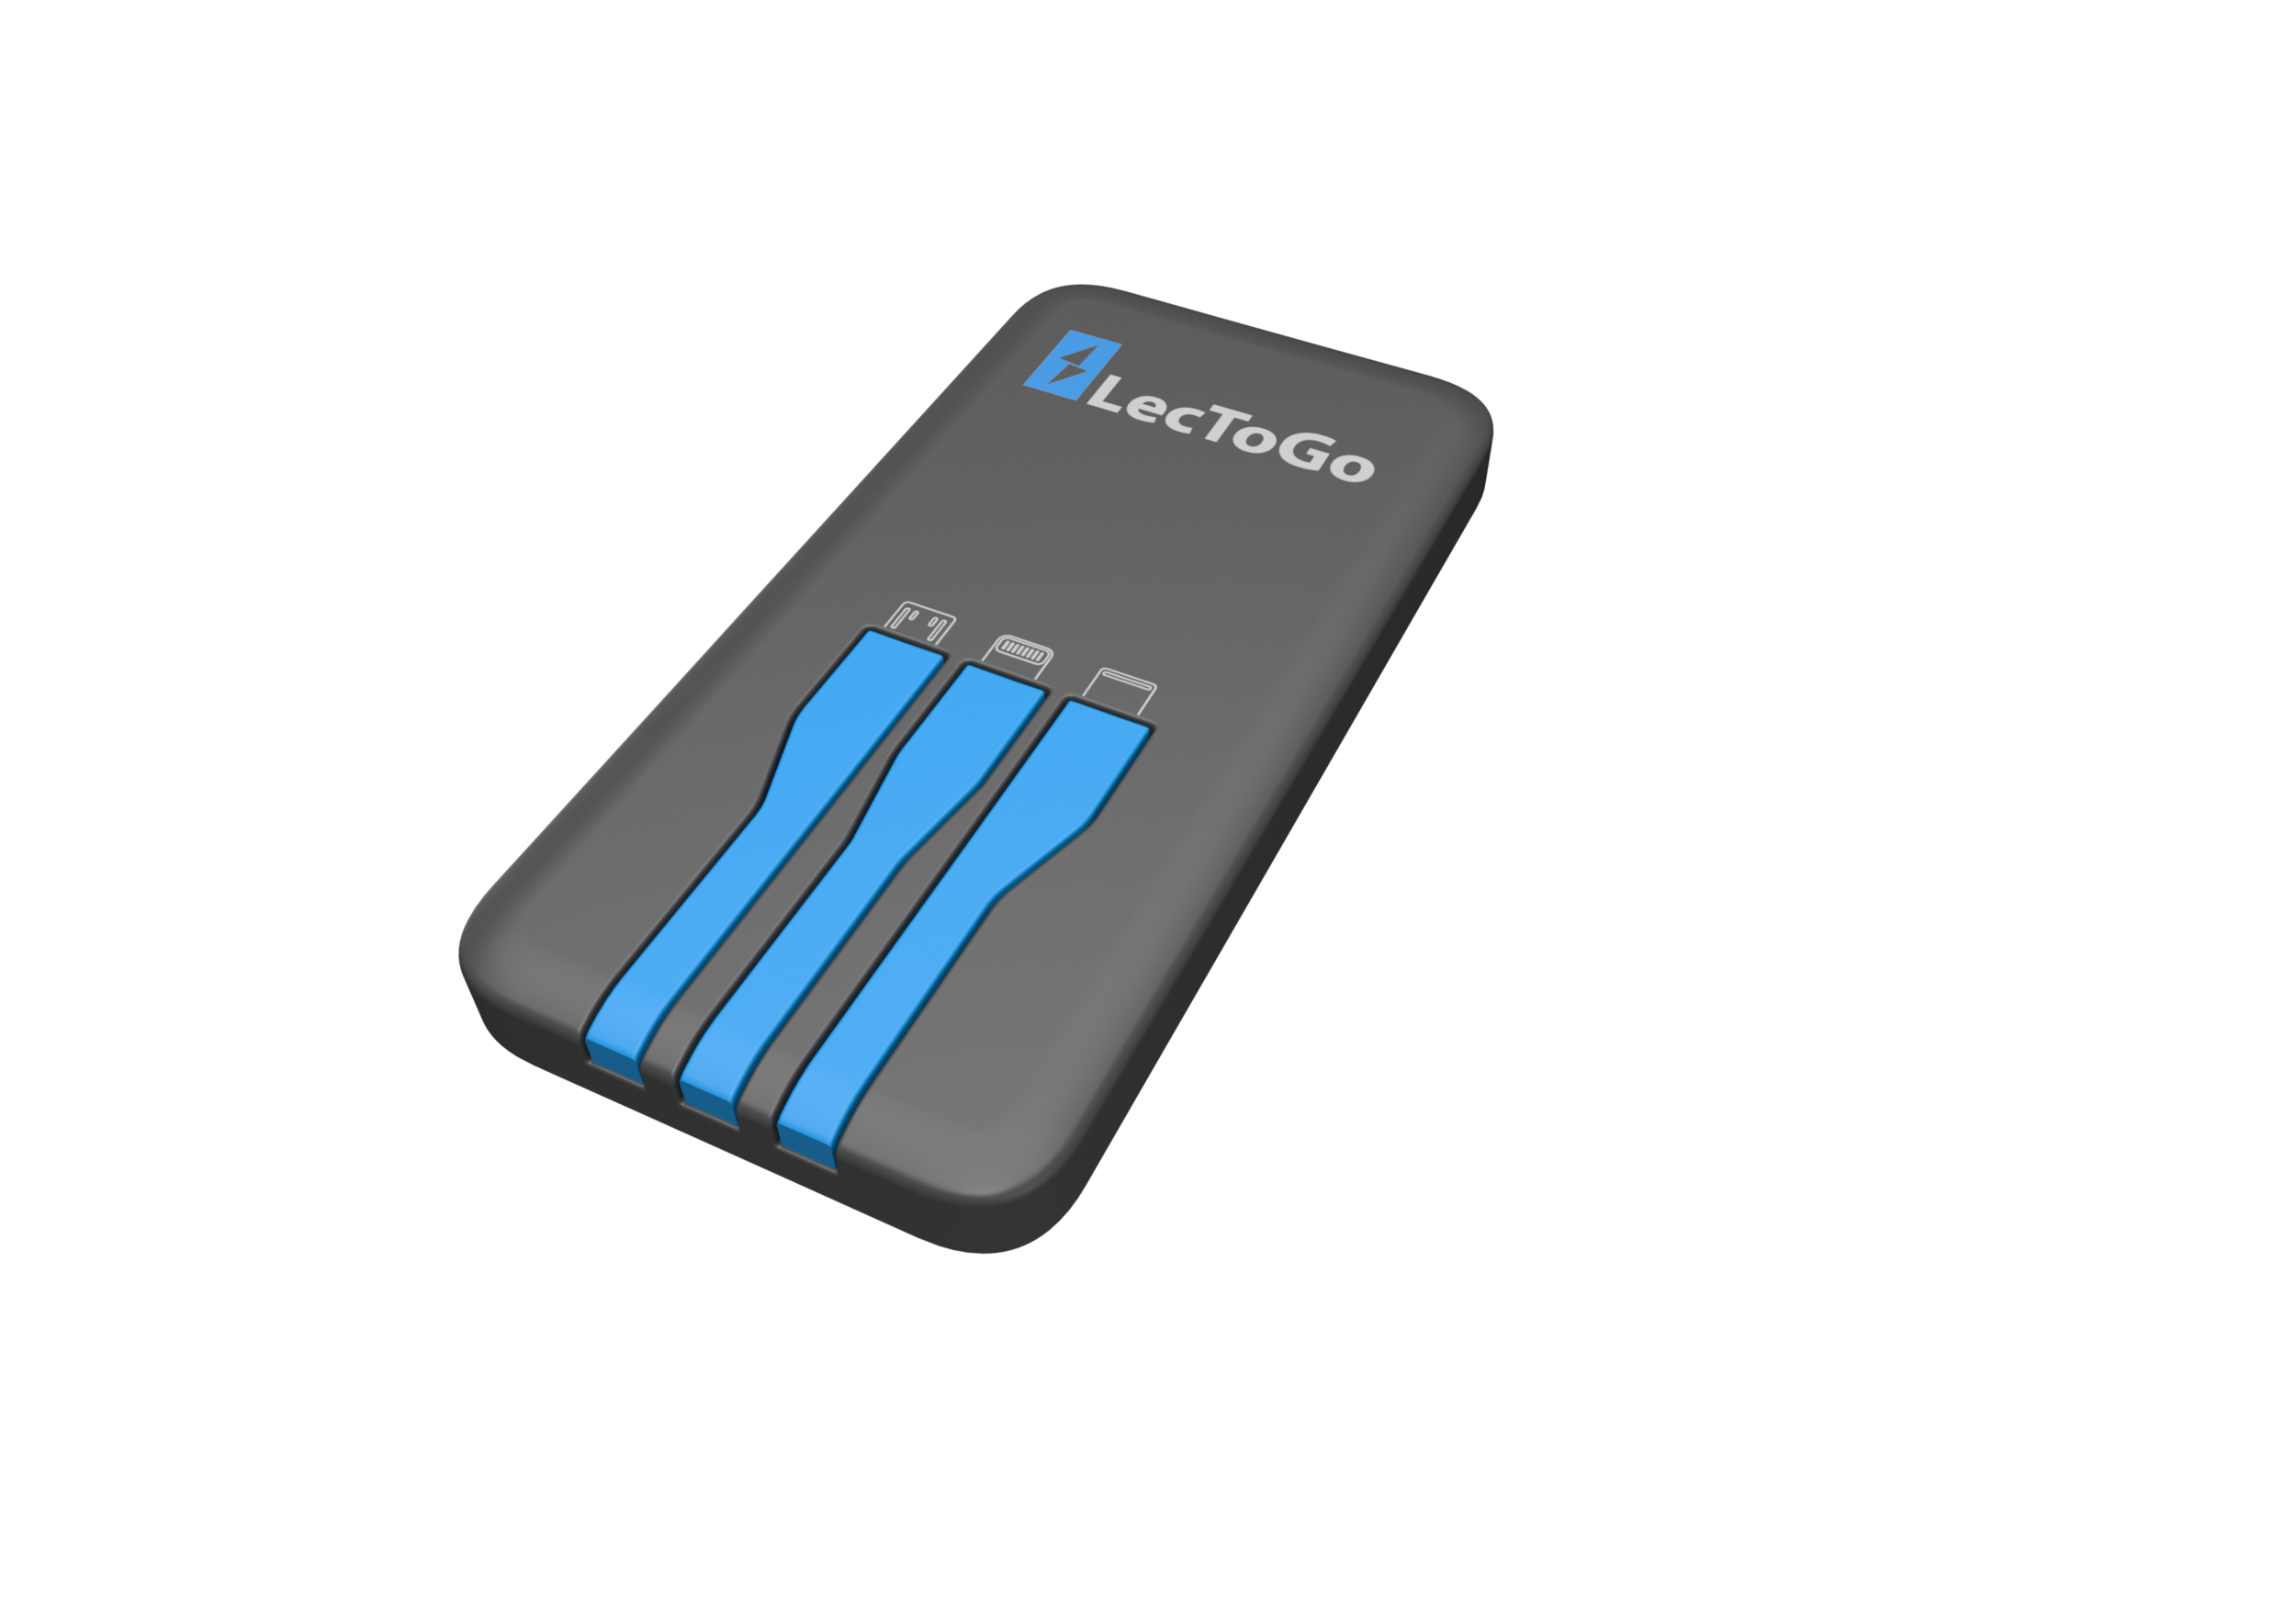 The power bank - Cables: USB-C, Micro USB, Lightning (Certified)Battery capacity: 5000mAh